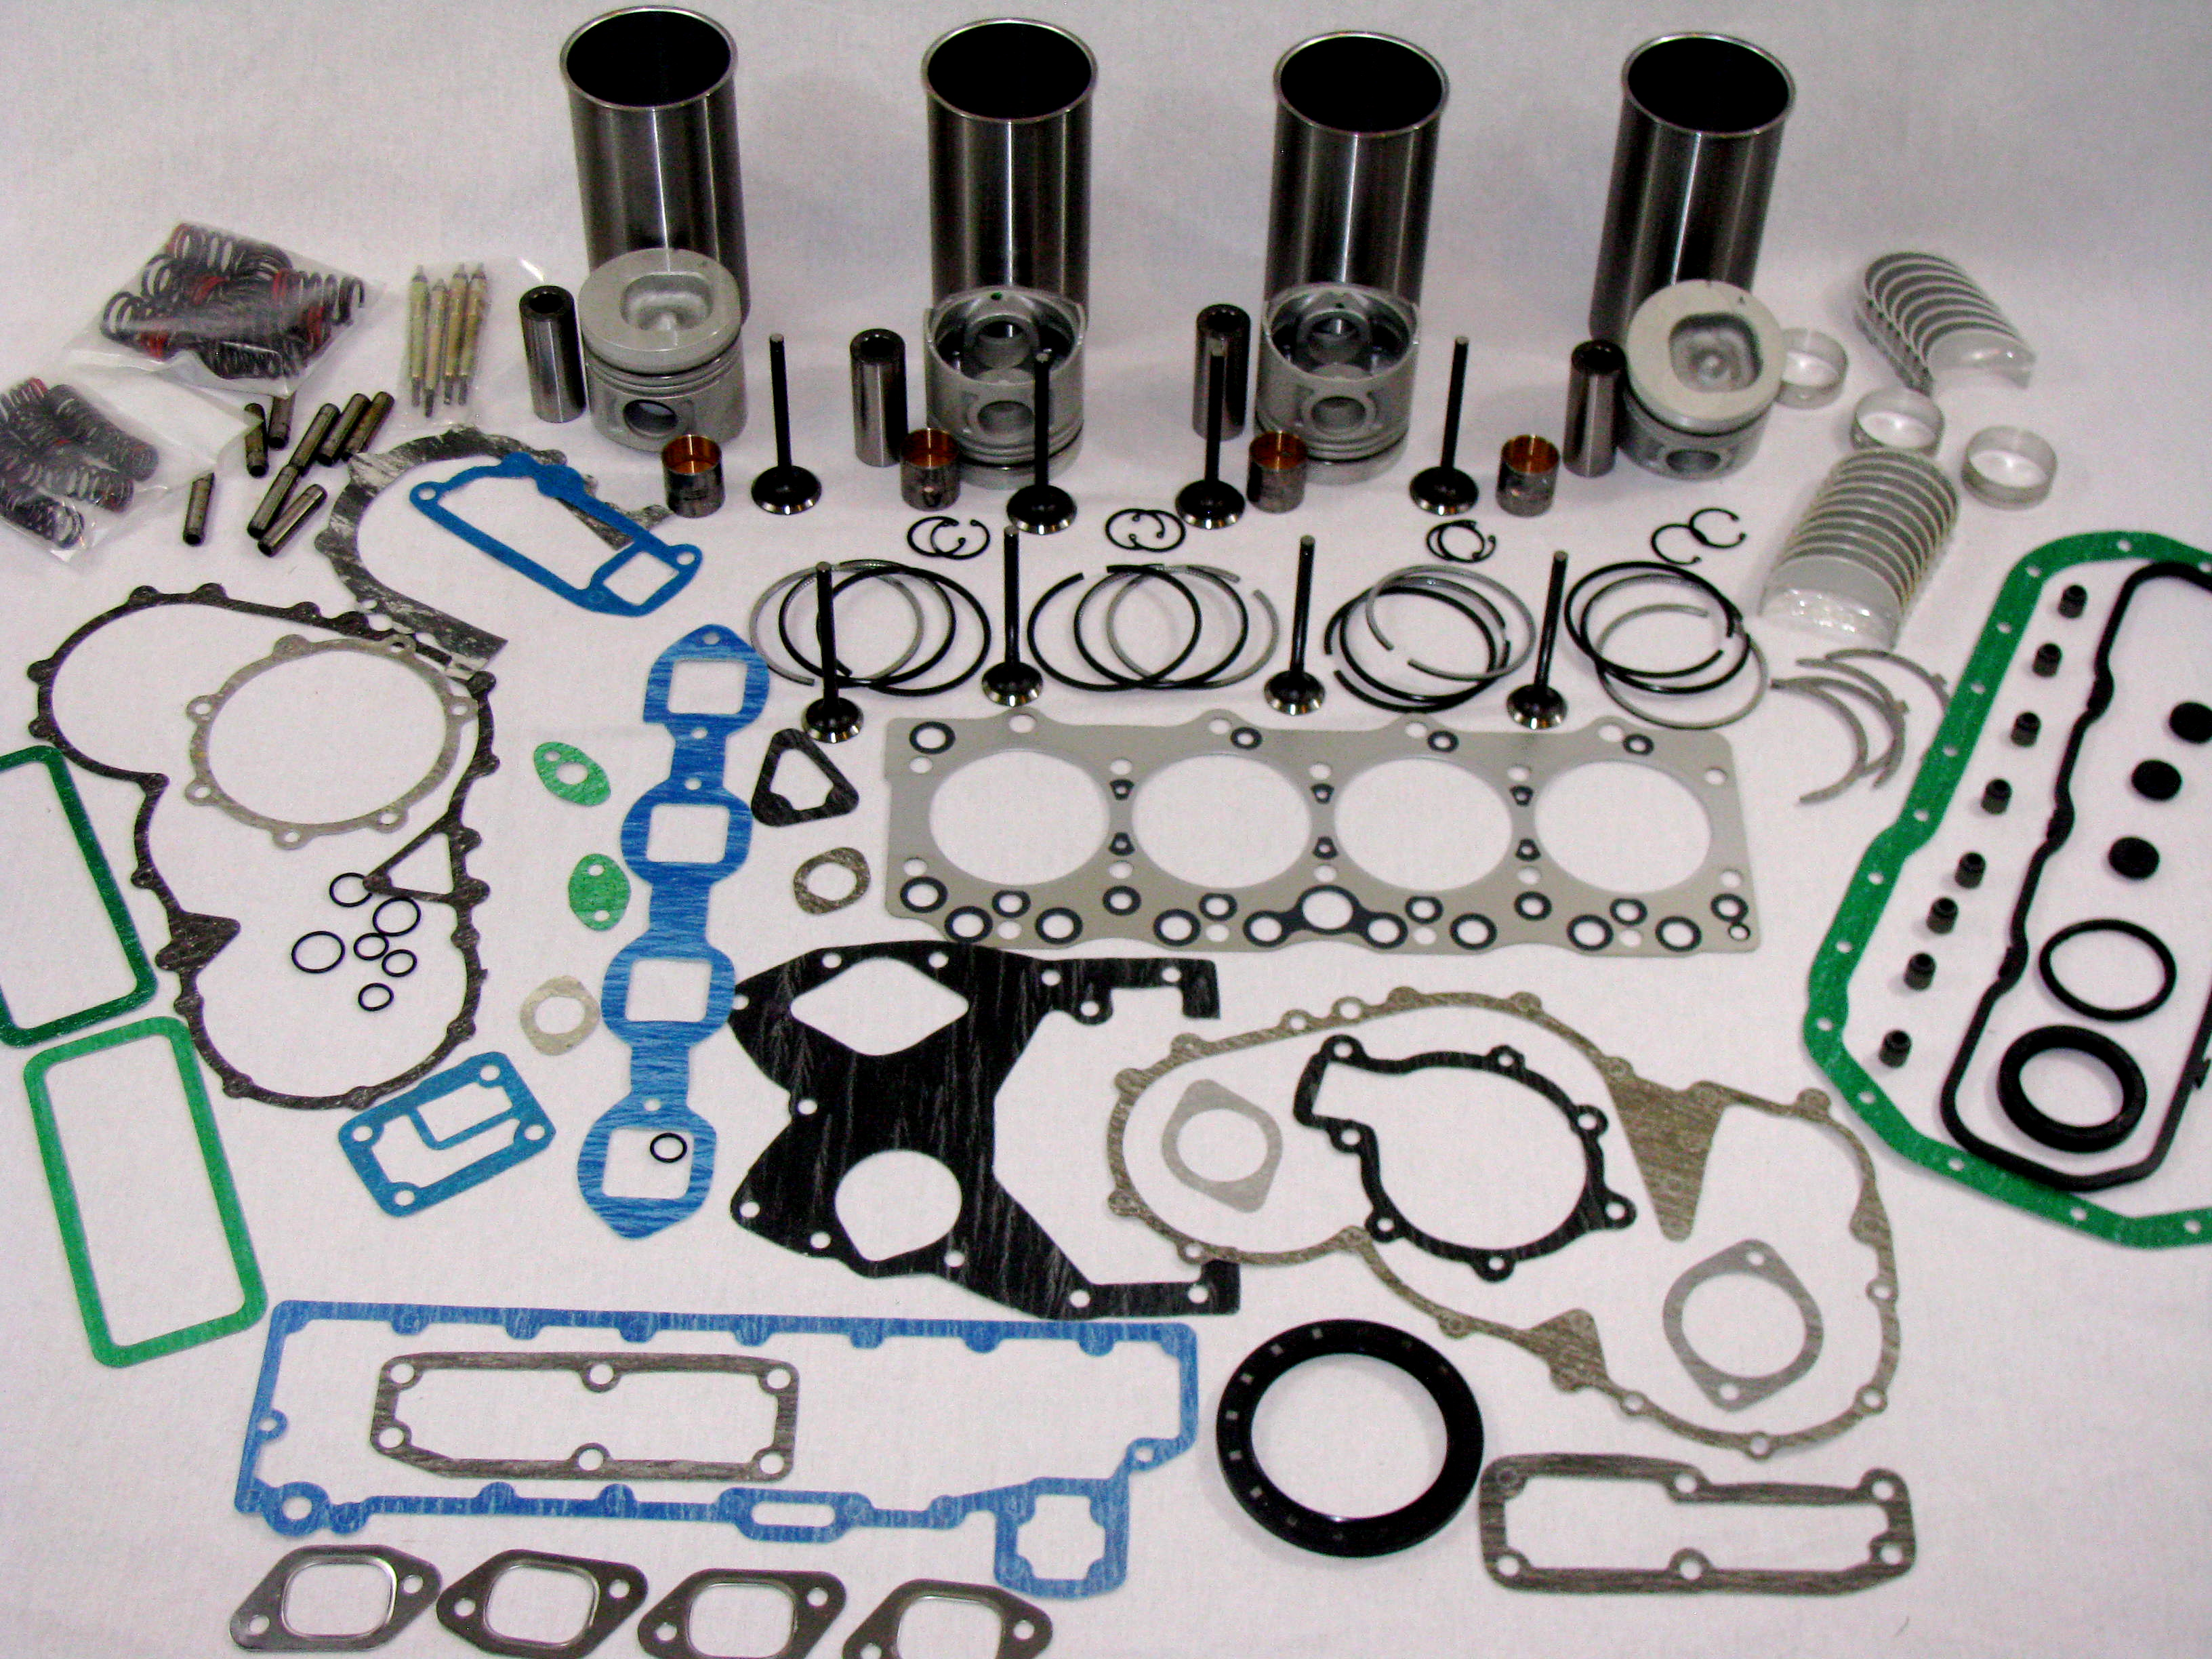 ISUZU 3 9 4BD1 ENGINE OVERHAUL KIT WITH VALVE TRAIN - Rudy's